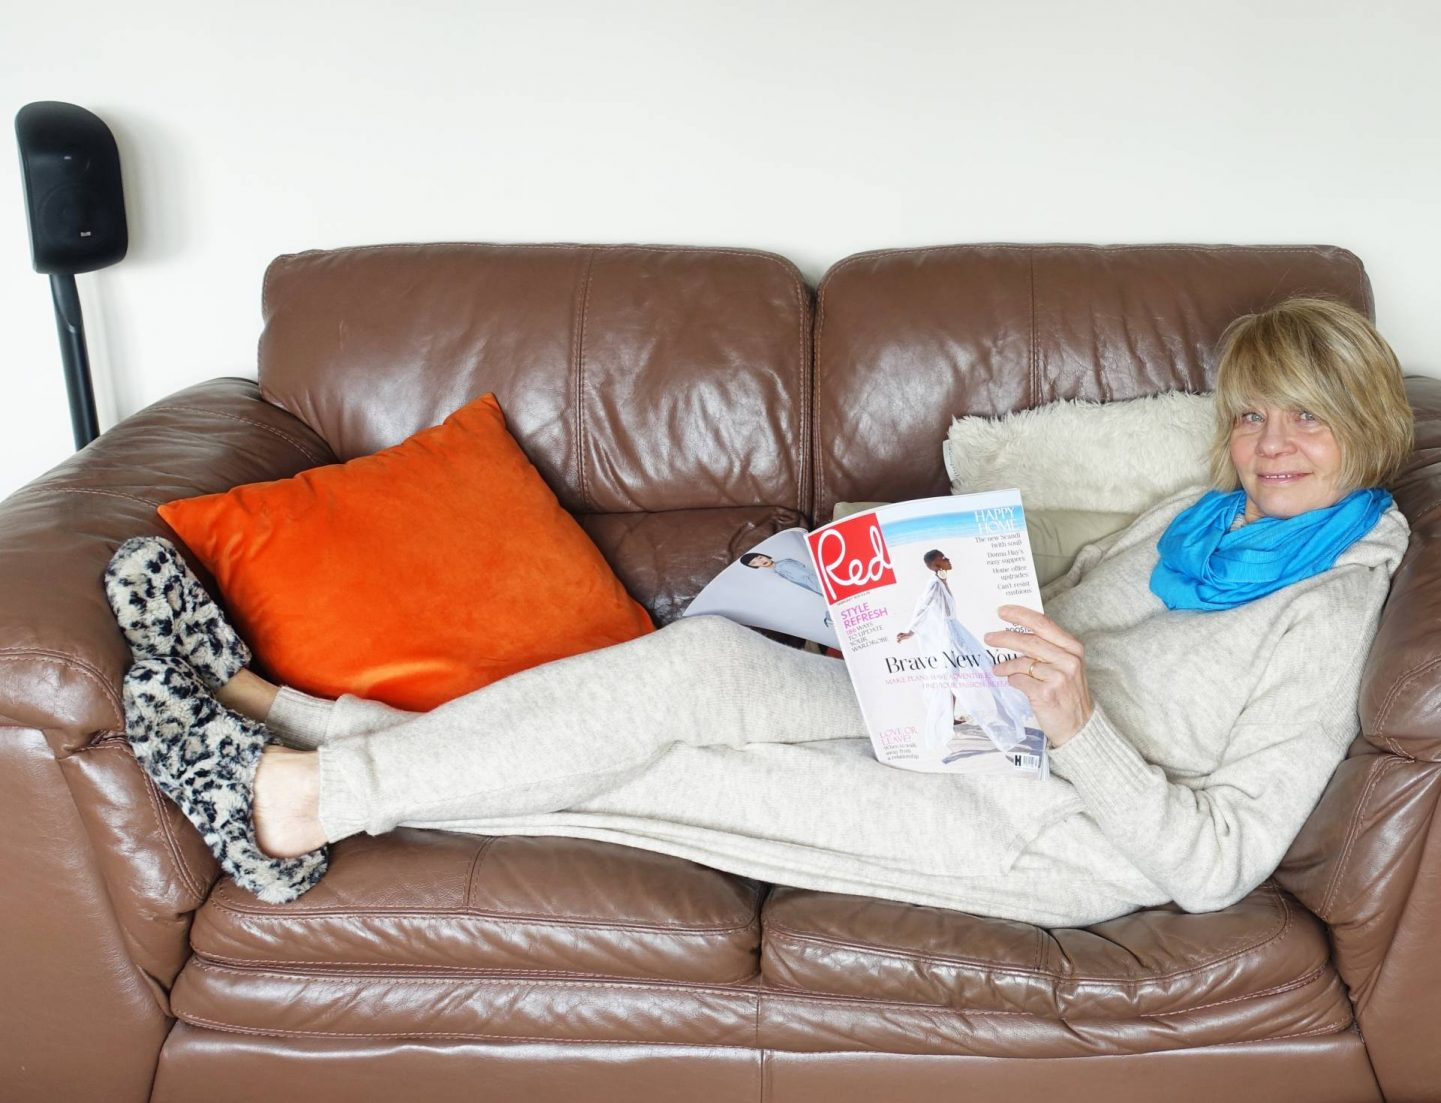 Lounging at Home - January's Style Not Age, Gail Hanlon